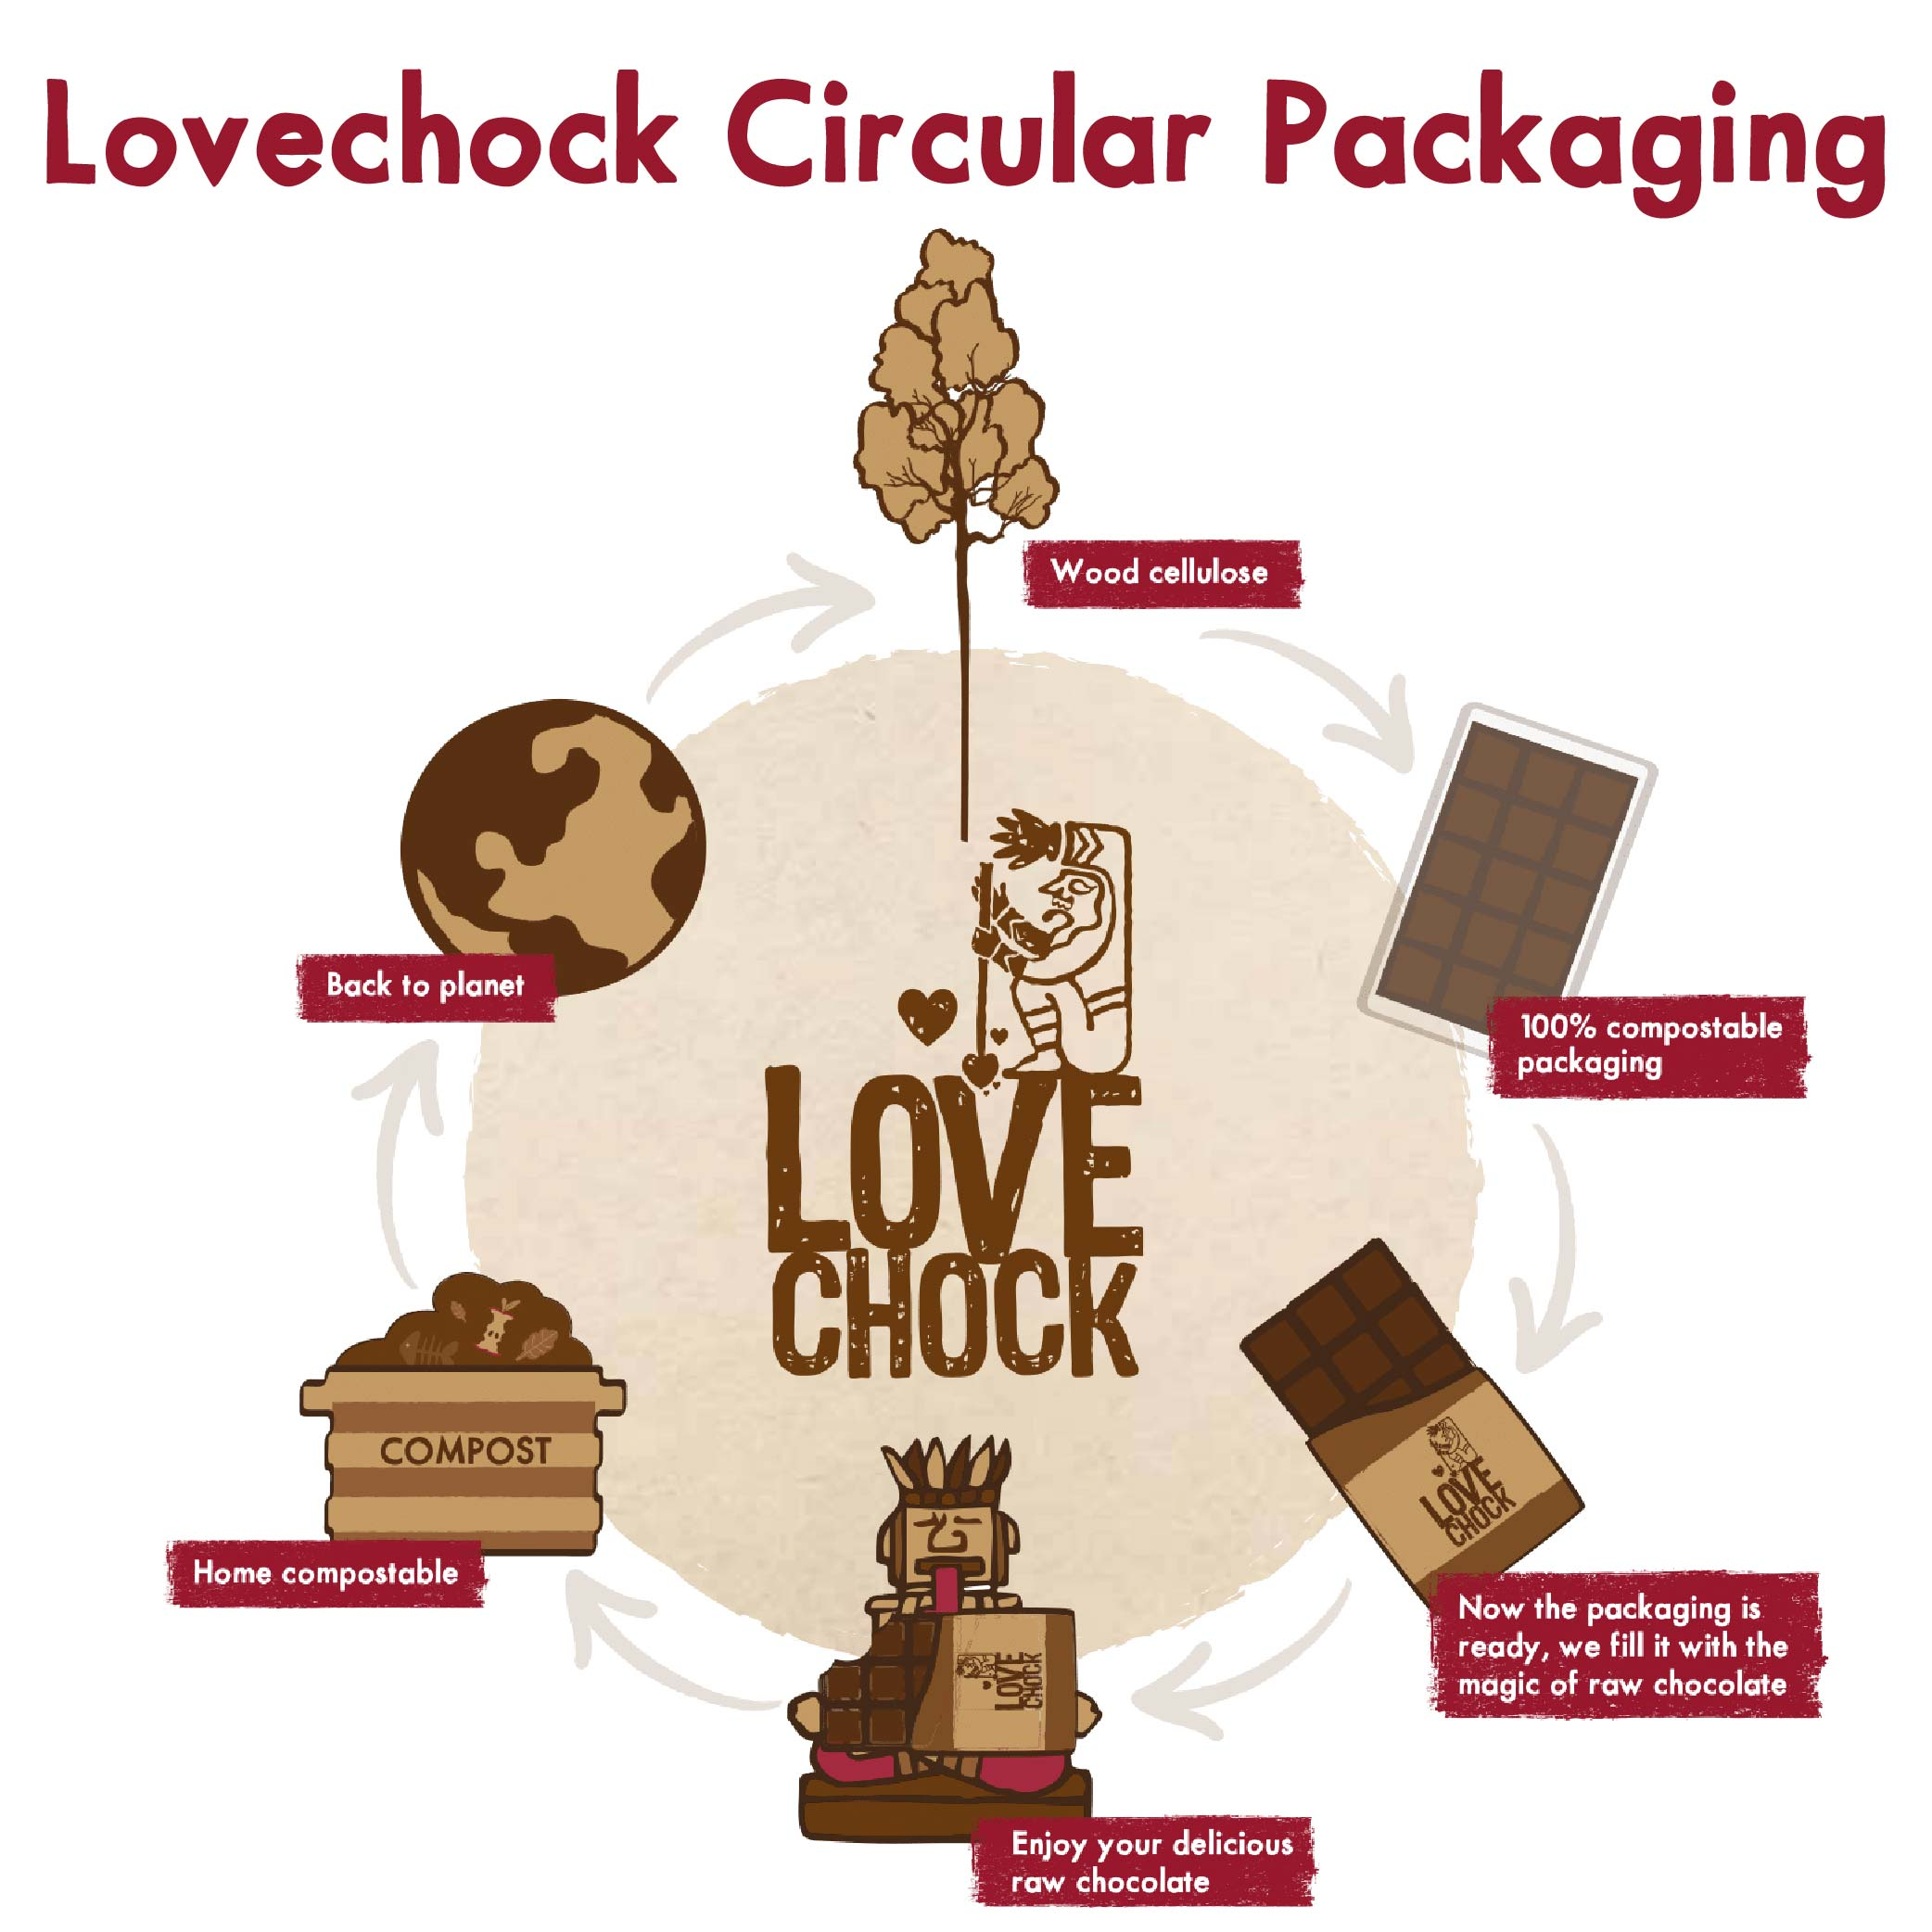 Lovechock Circular Packaging according to our Plastic Free Mission